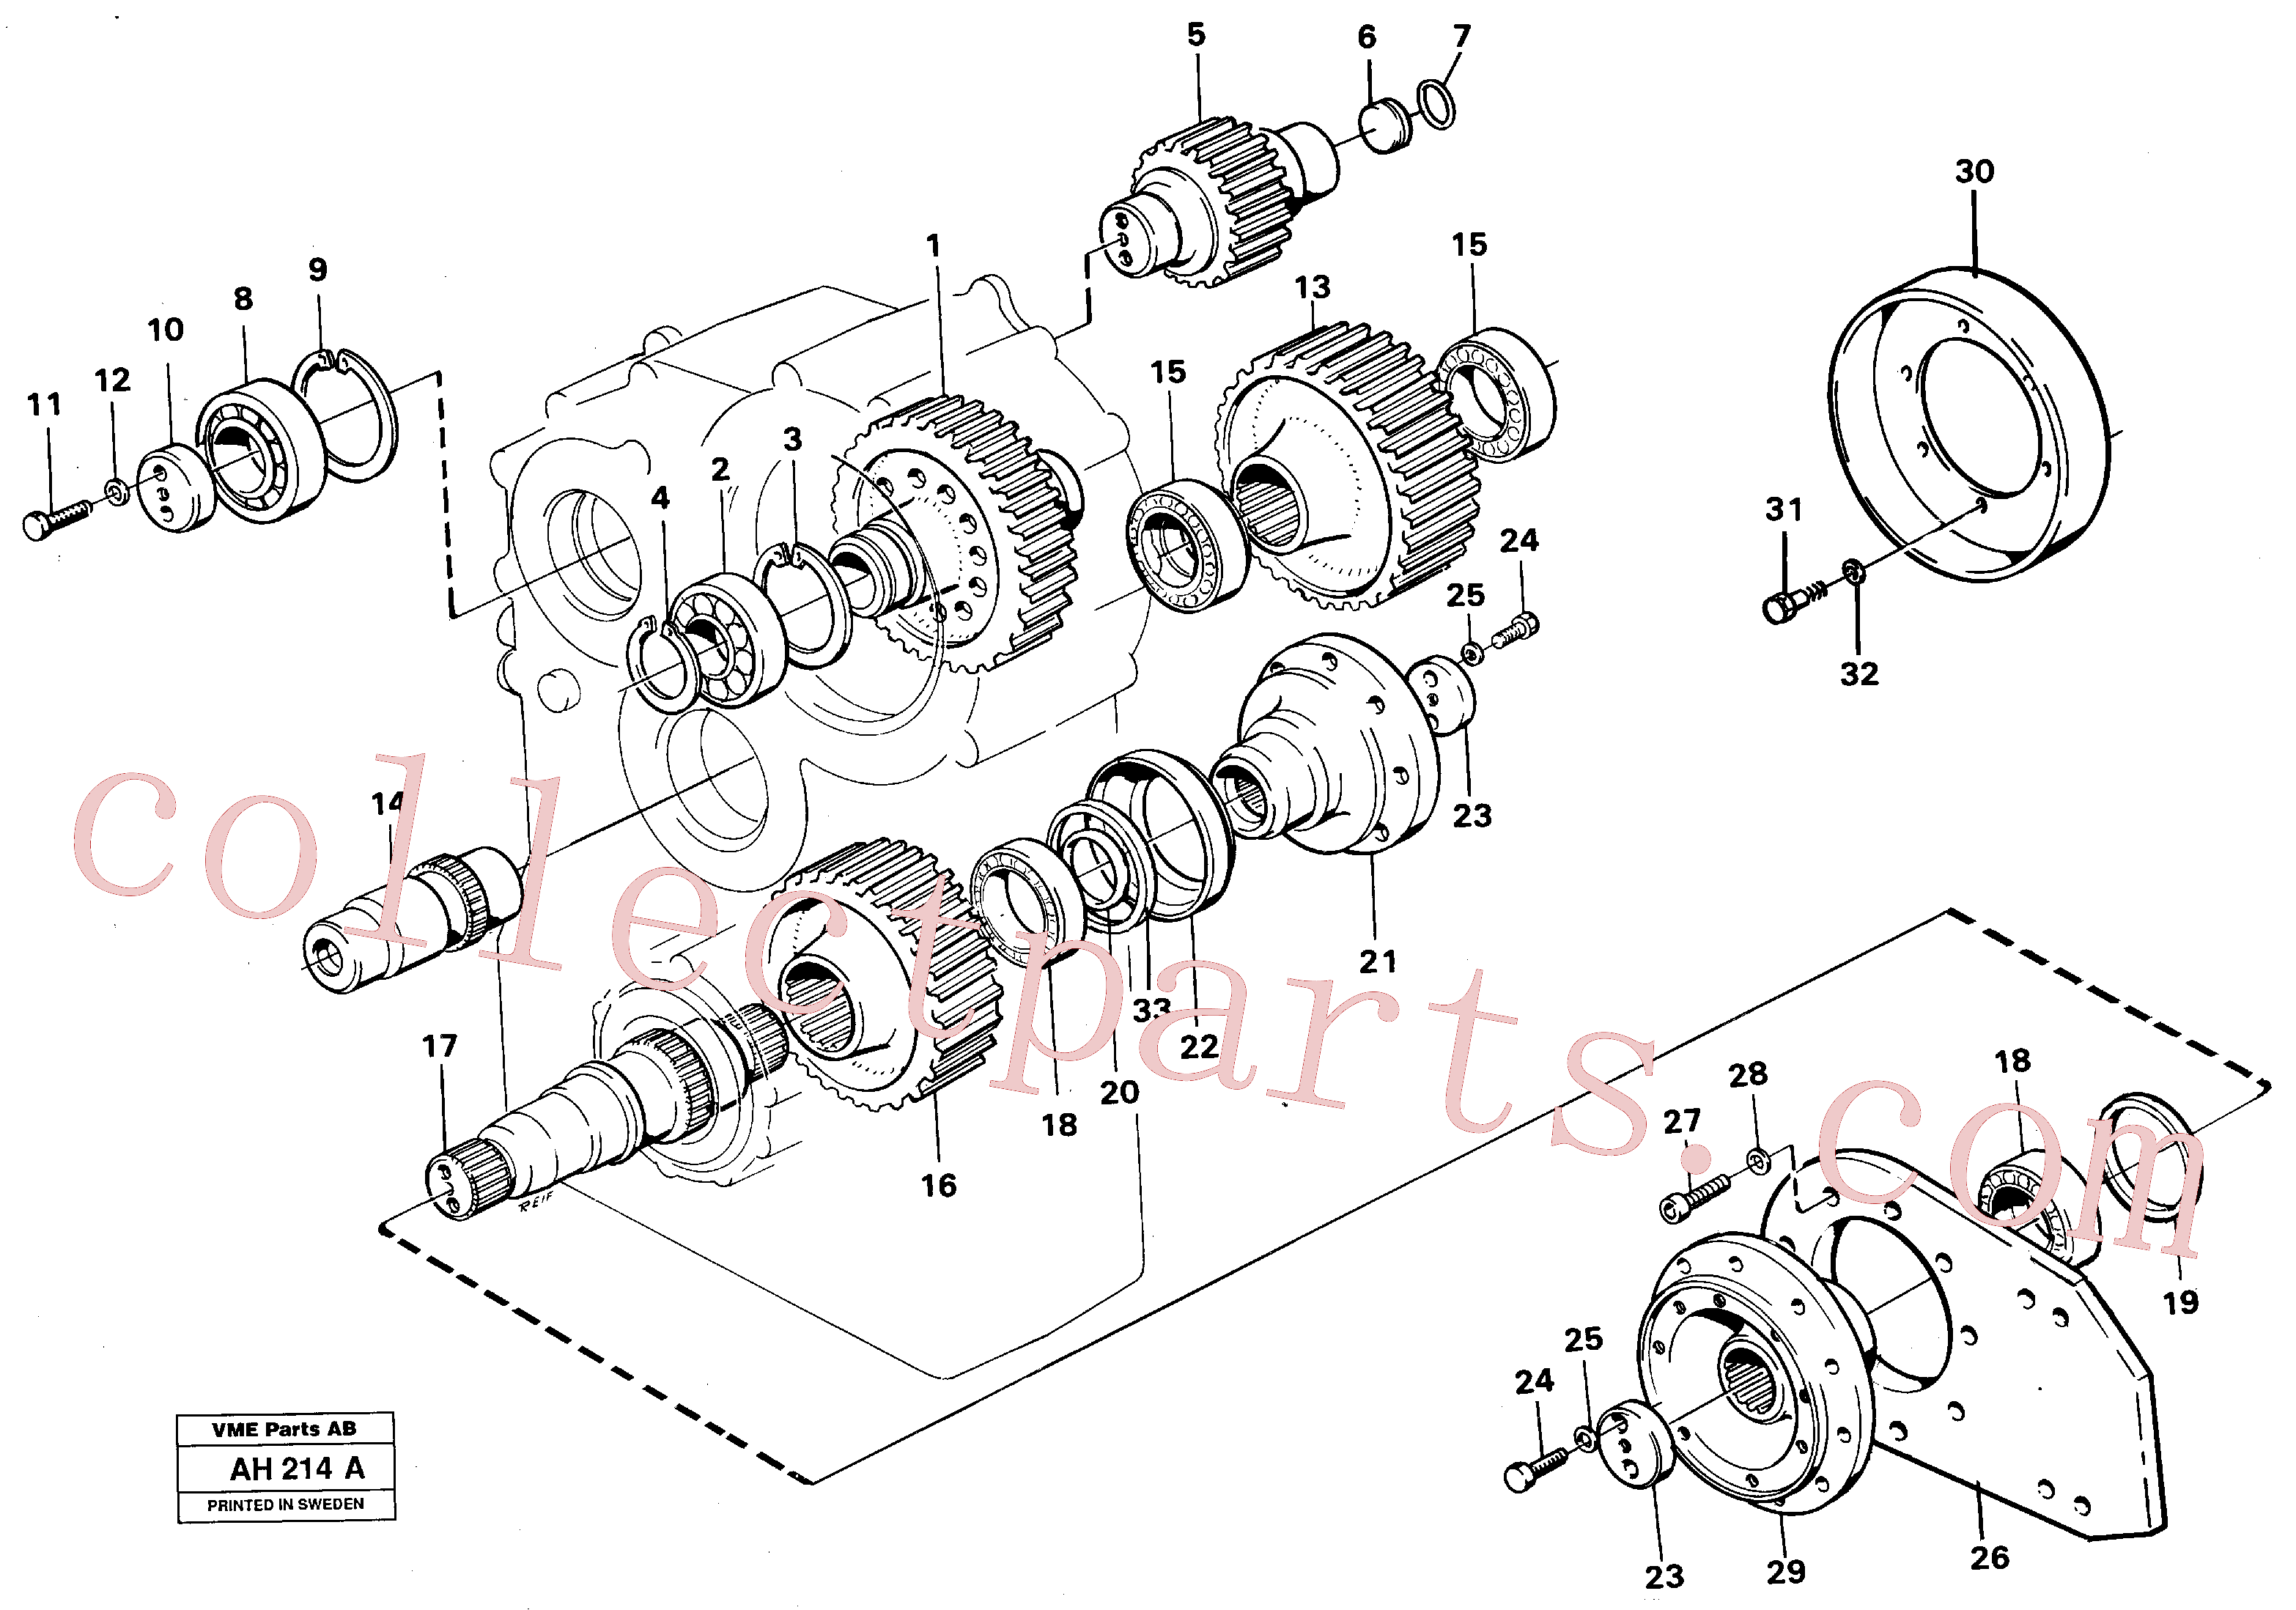 VOE914550 for Volvo Transfer gearbox gears and shafts(AH214A assembly)